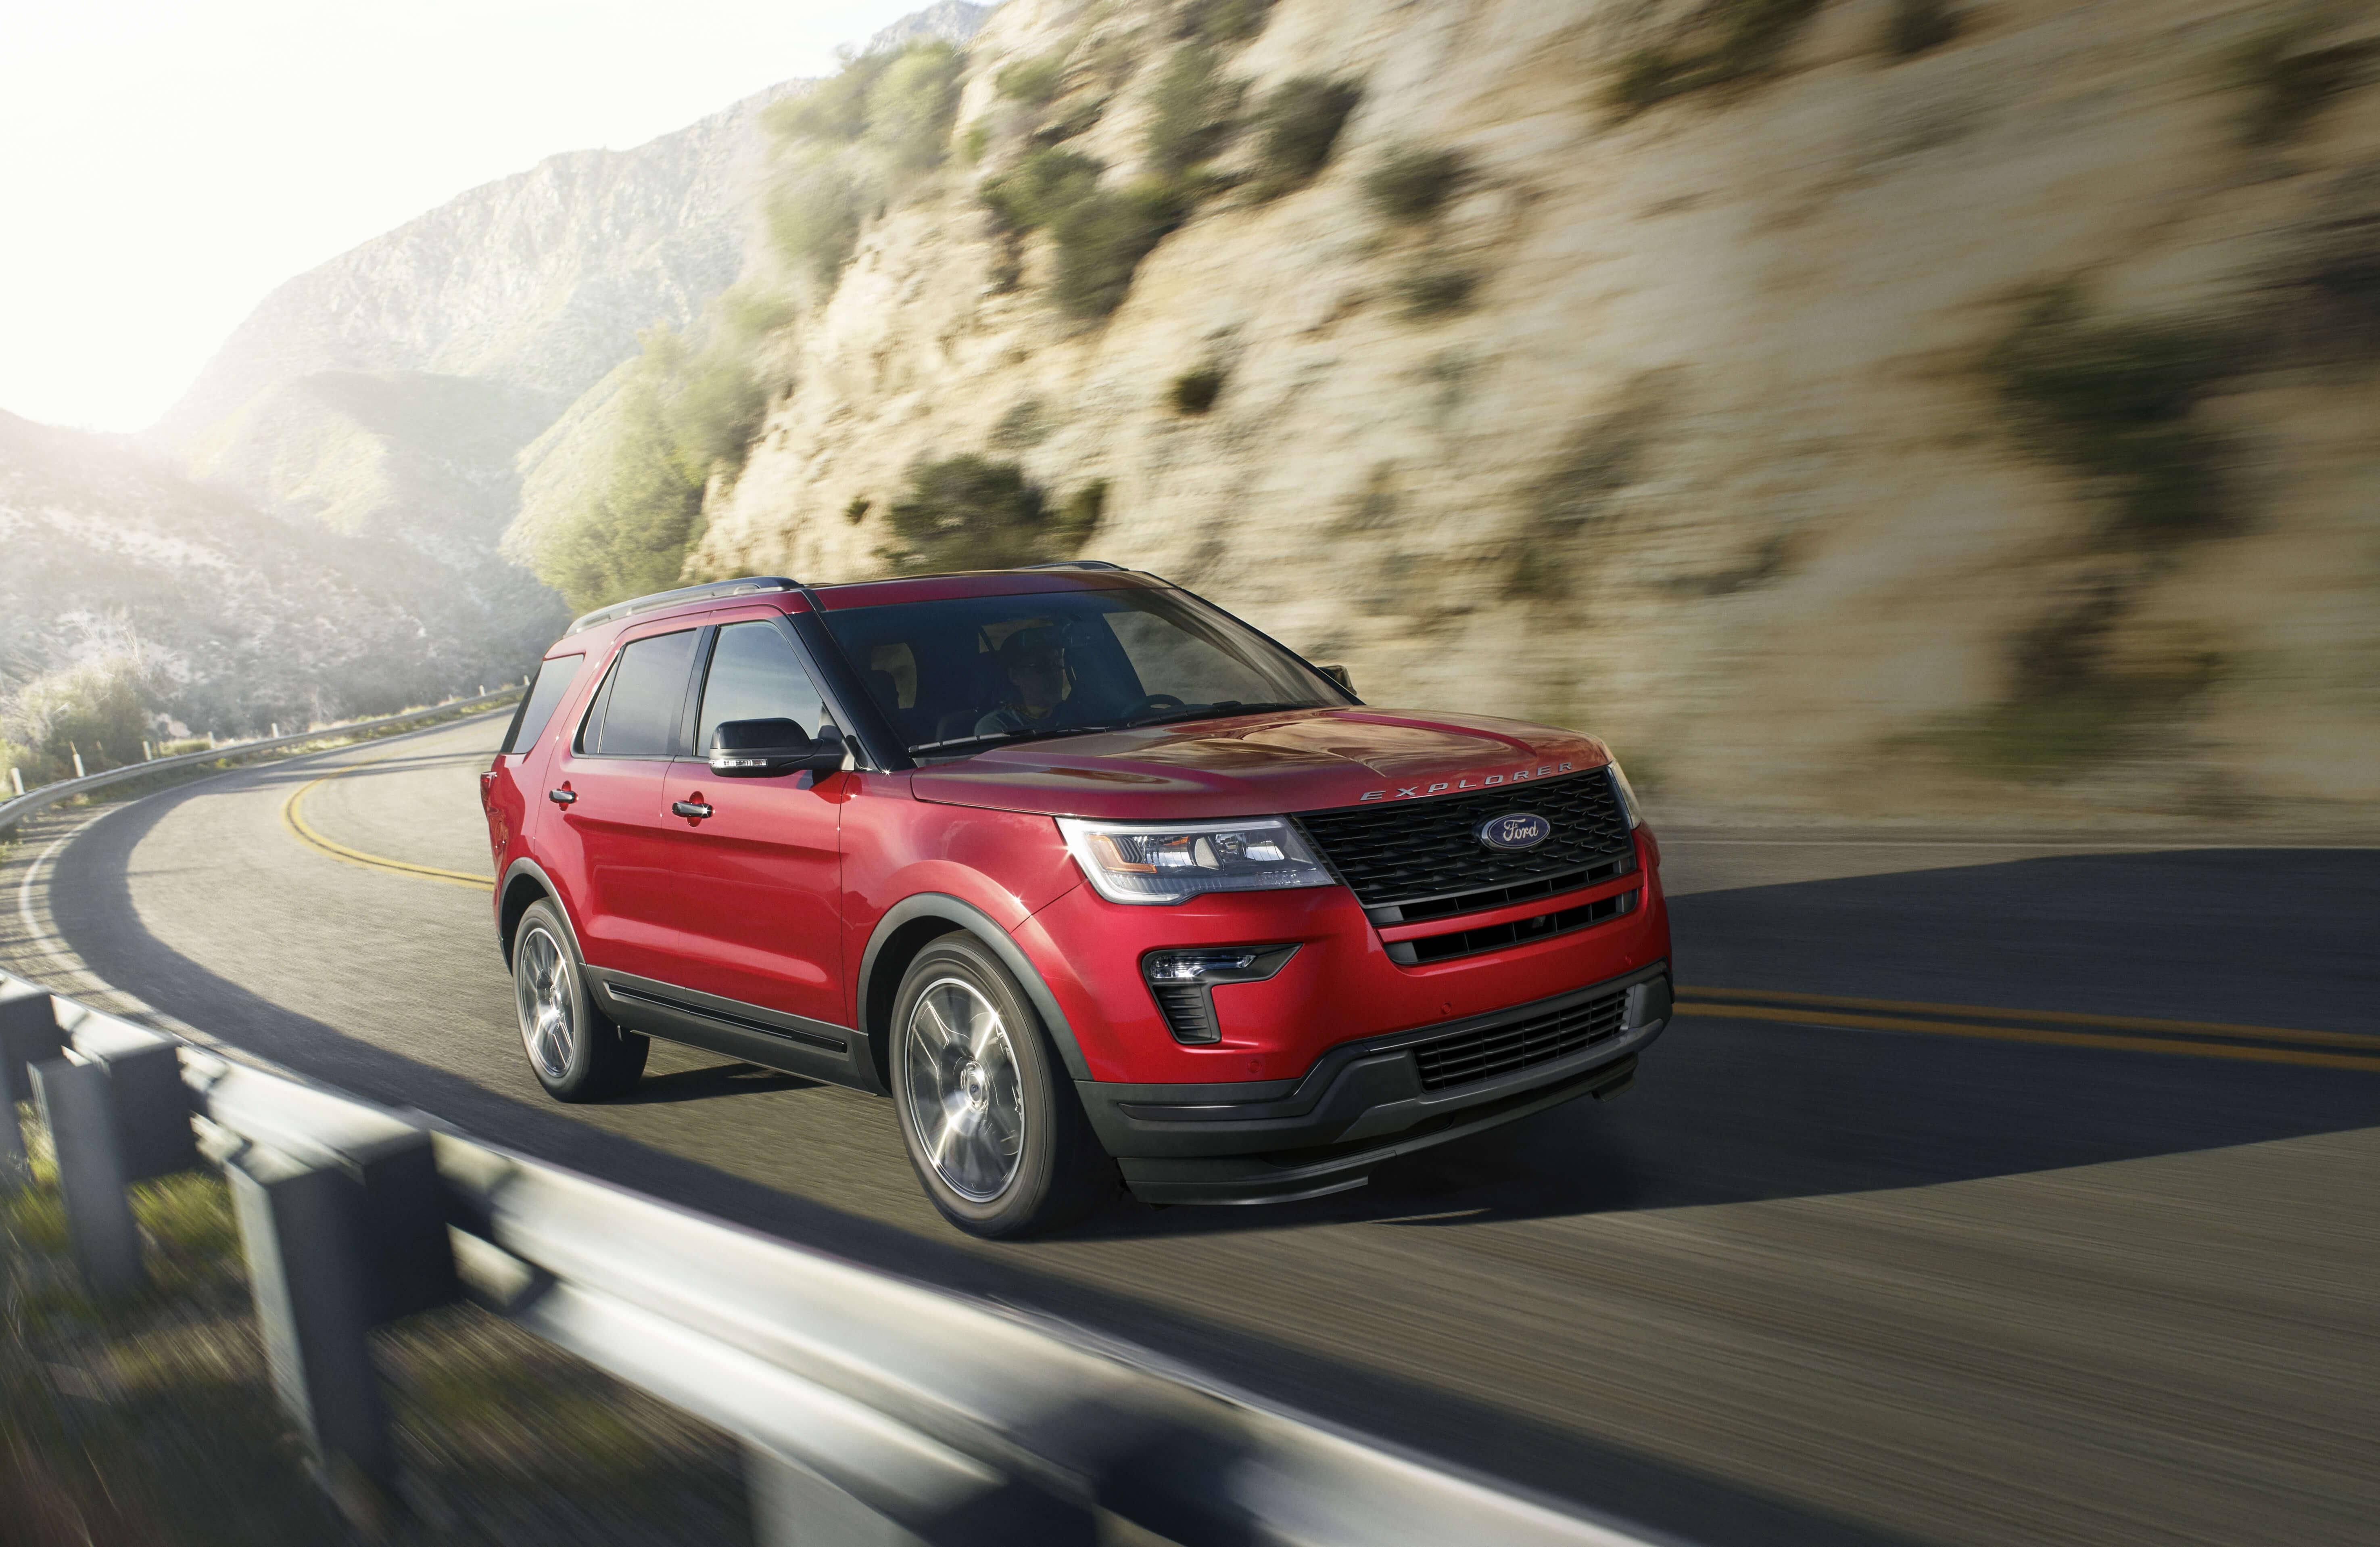 Ford Explorer Towing Capacity >> The All New 2019 Ford Explorer Towing Capacity